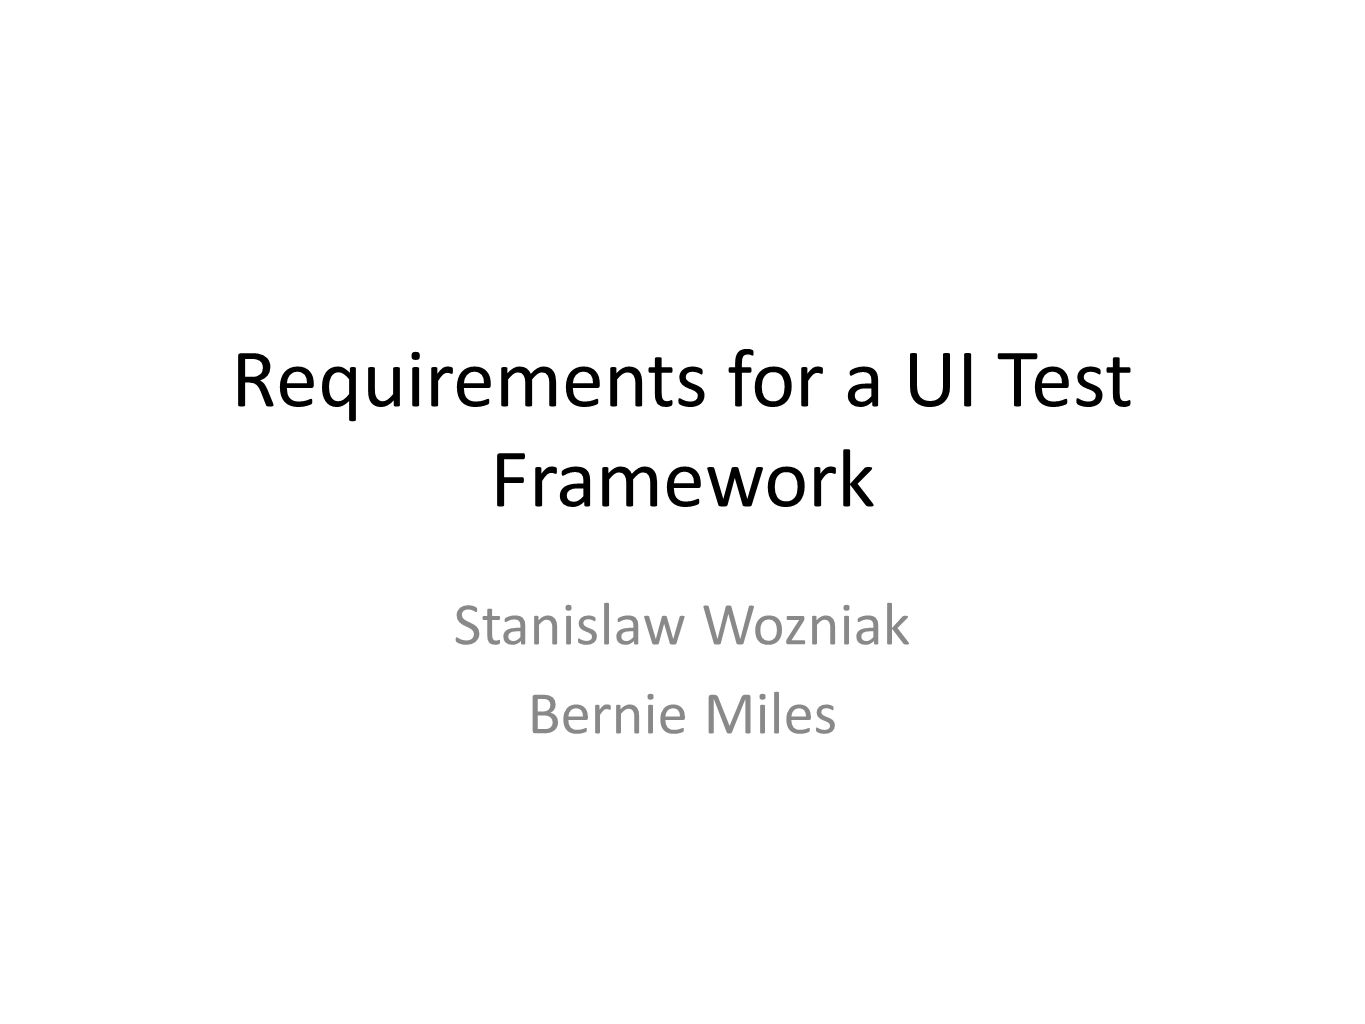 Test authoring Flexible scripting language, Object oriented, Easy to learn It should be straight forward to write tests and to understand the code Flexible object recognition engine Flexible error handling within the scripts Good documentation Easy to use, intuitive UI Global support 24/5